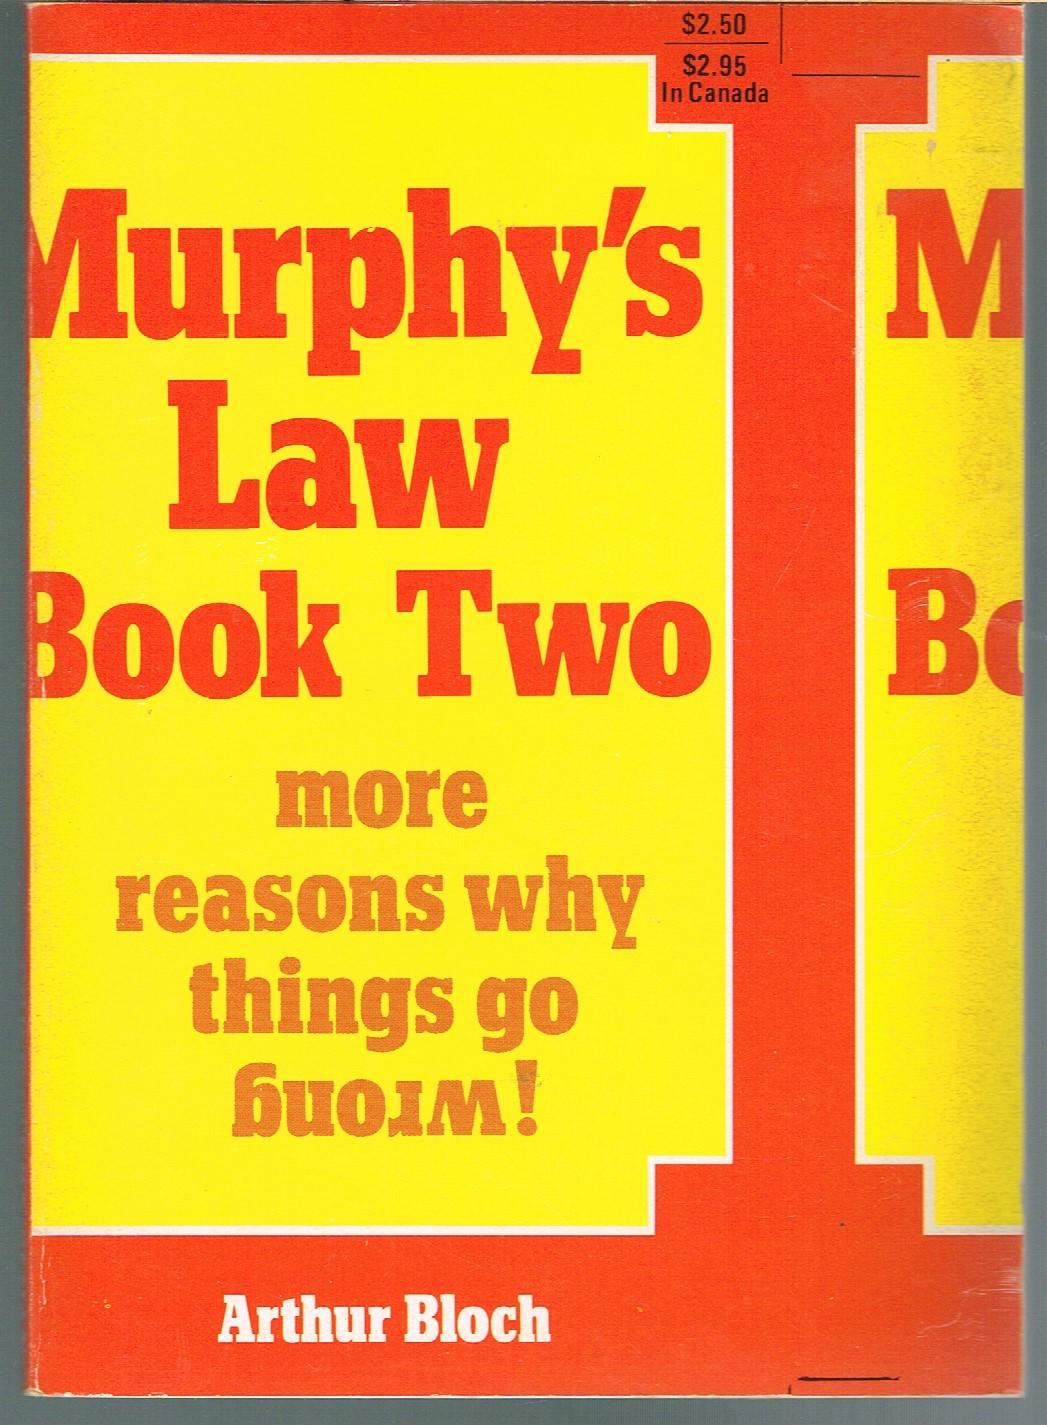 MURPHY'S LAW BOOK TWO, MORE REASONS WHY